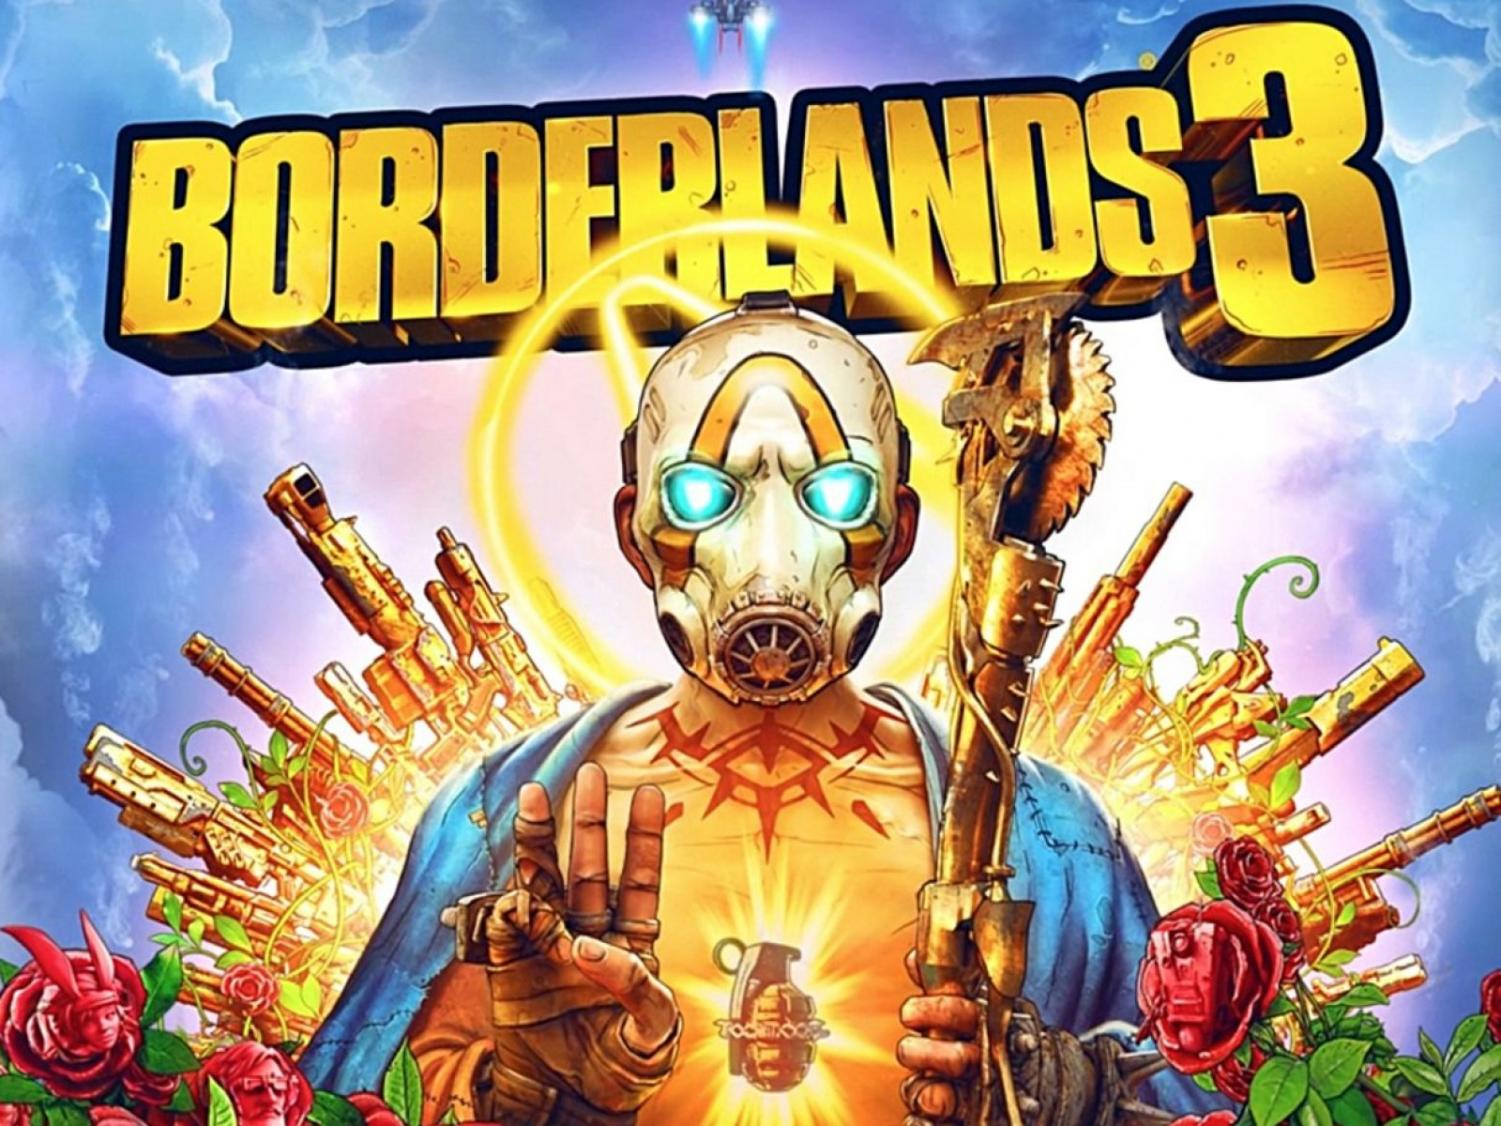 The image for the Borderlands 3 cover, a new game by Gearbox.